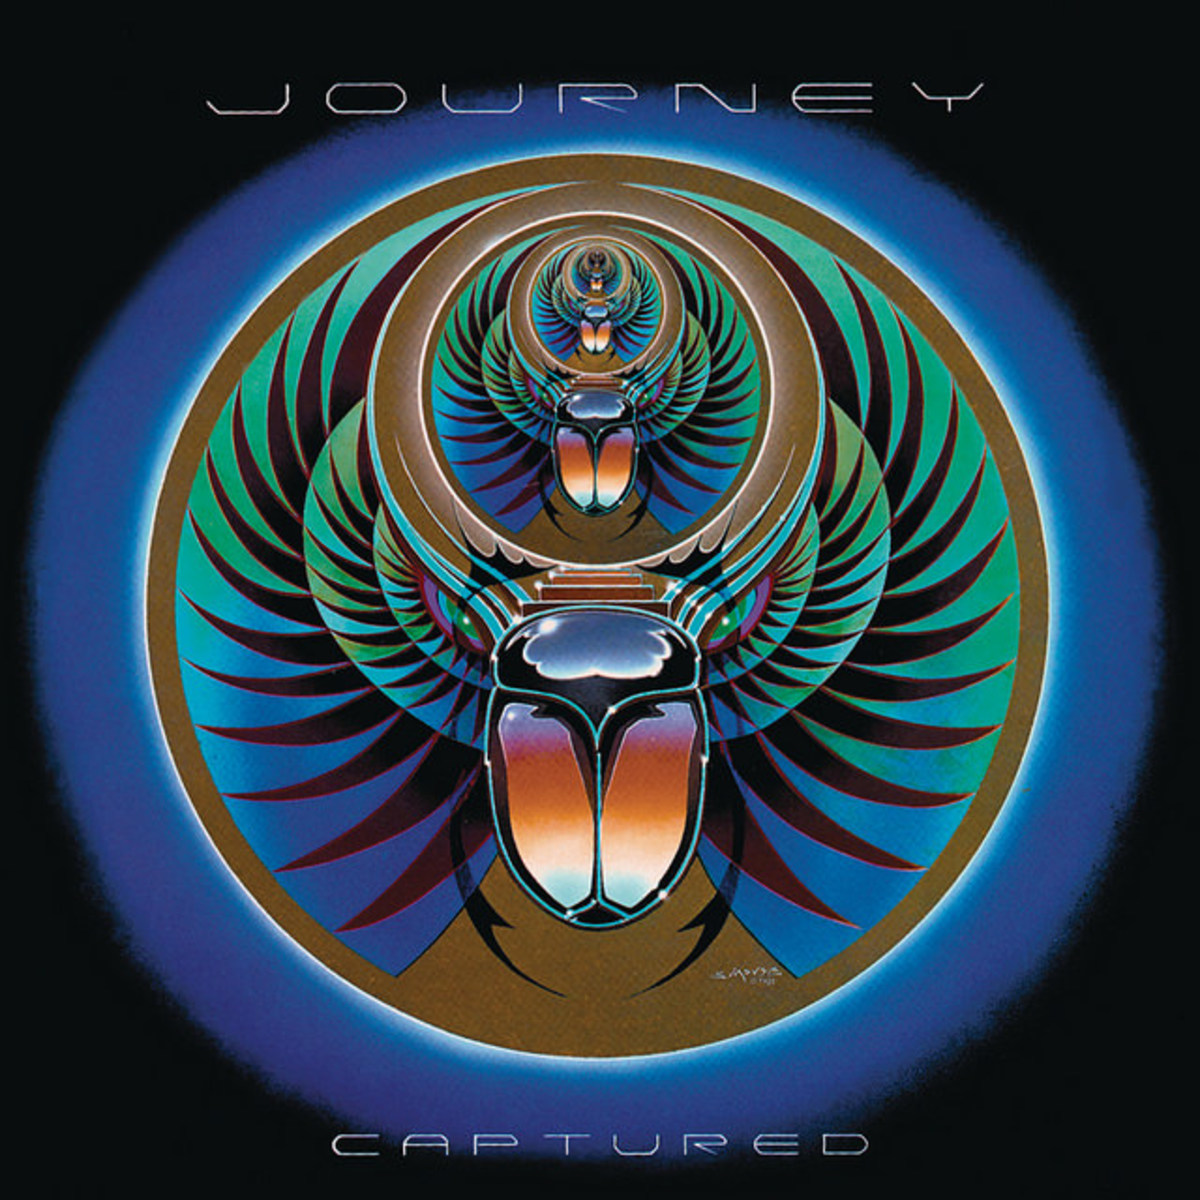 "Journey ""Captured"" Columbia Records KC2 37016 2 12"" LP Vinyl Record Set US Pressing (1981)  Album Cover Art by Stanley Mouse"